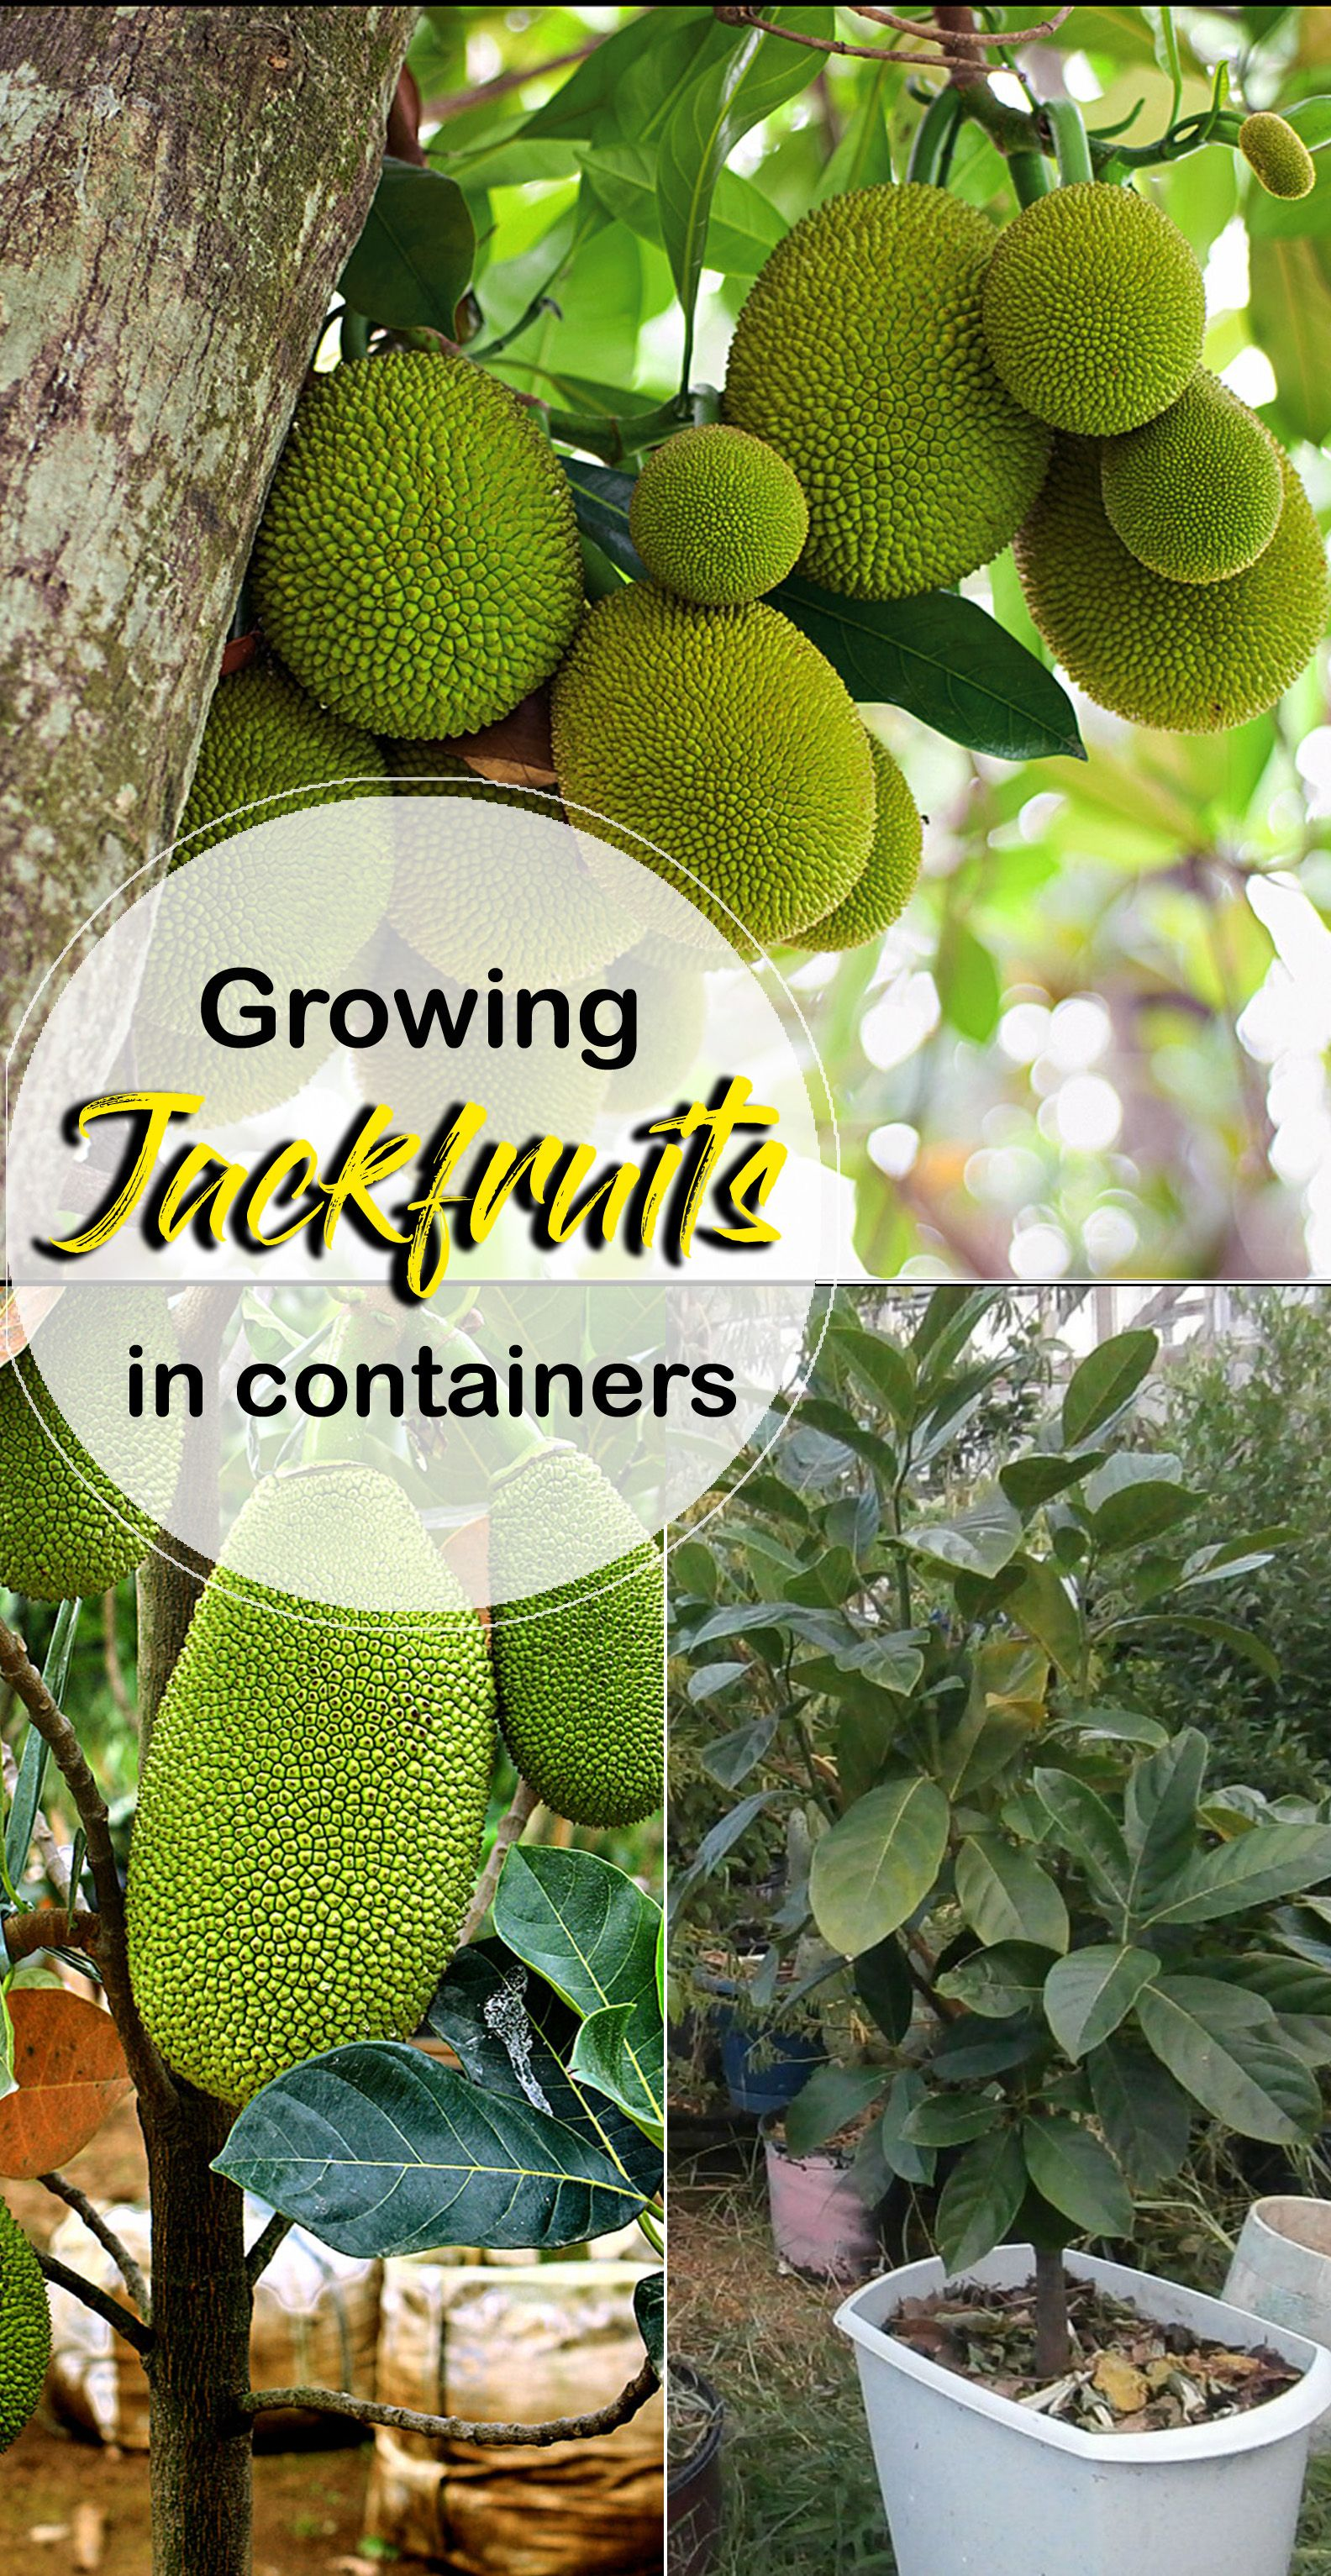 Growing Jackfruit In Containers How To Grow Jackfruit Tree Jackfruit Tree Jackfruit Jackfruit Plant